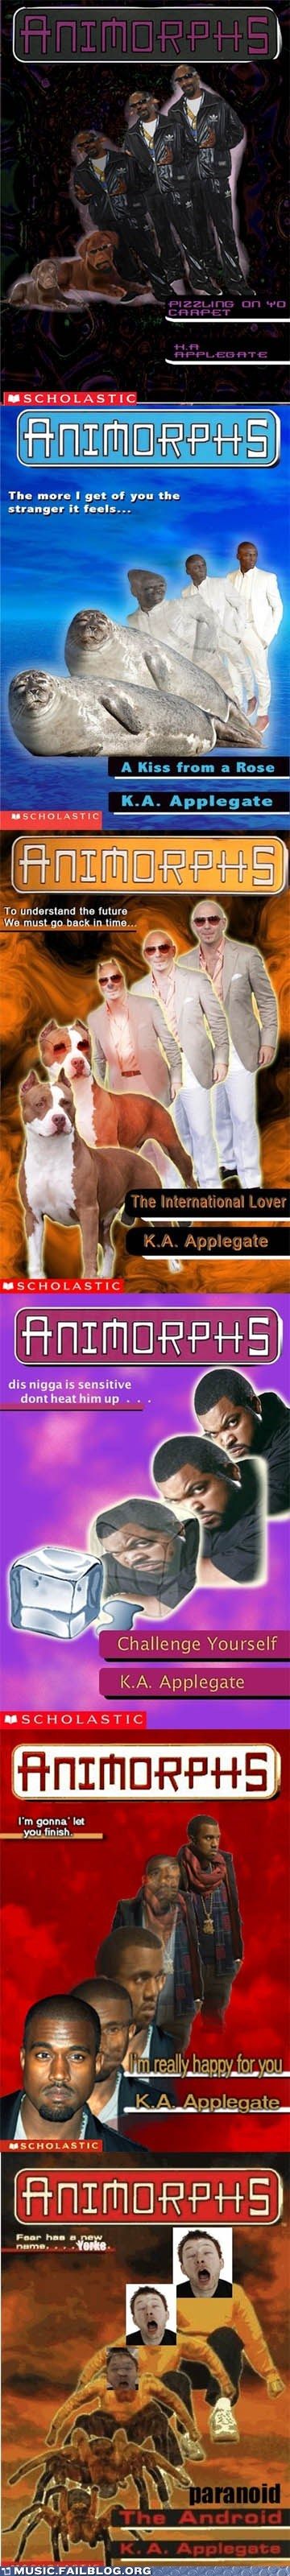 animorphs,ice cube,kanye west,pitbull,radiohead,seal,snoop dogg,Thom Yorke